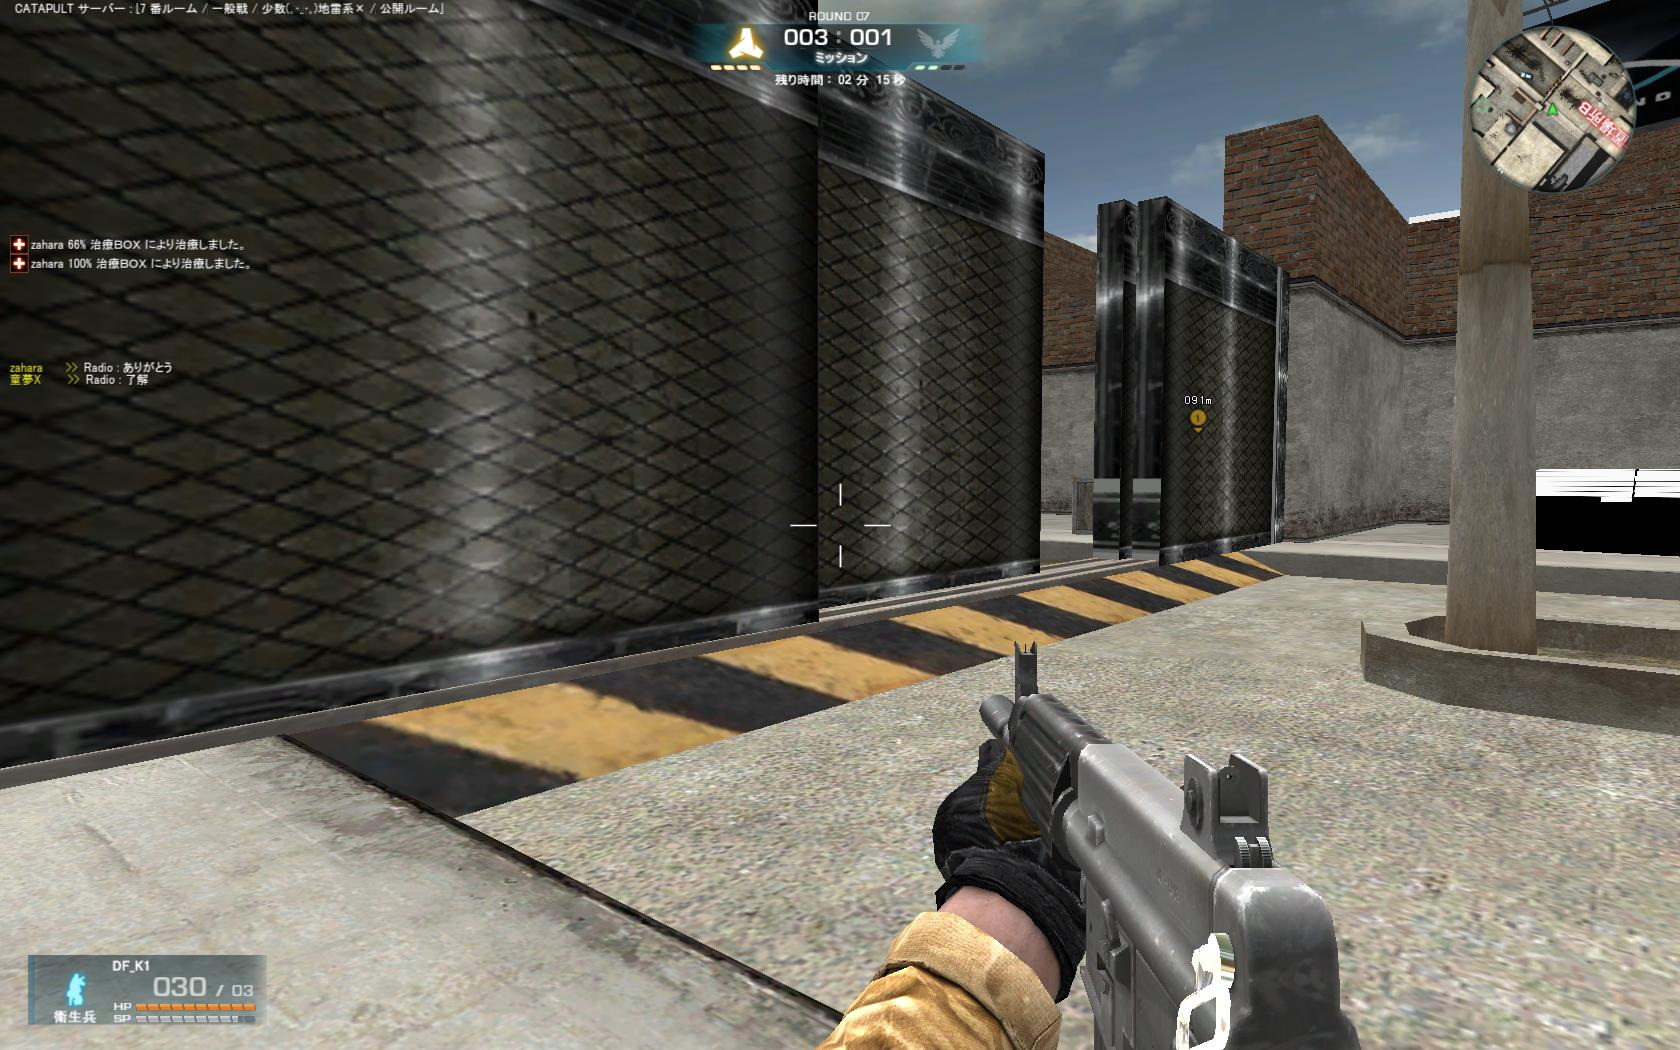 screenshot_019.jpg